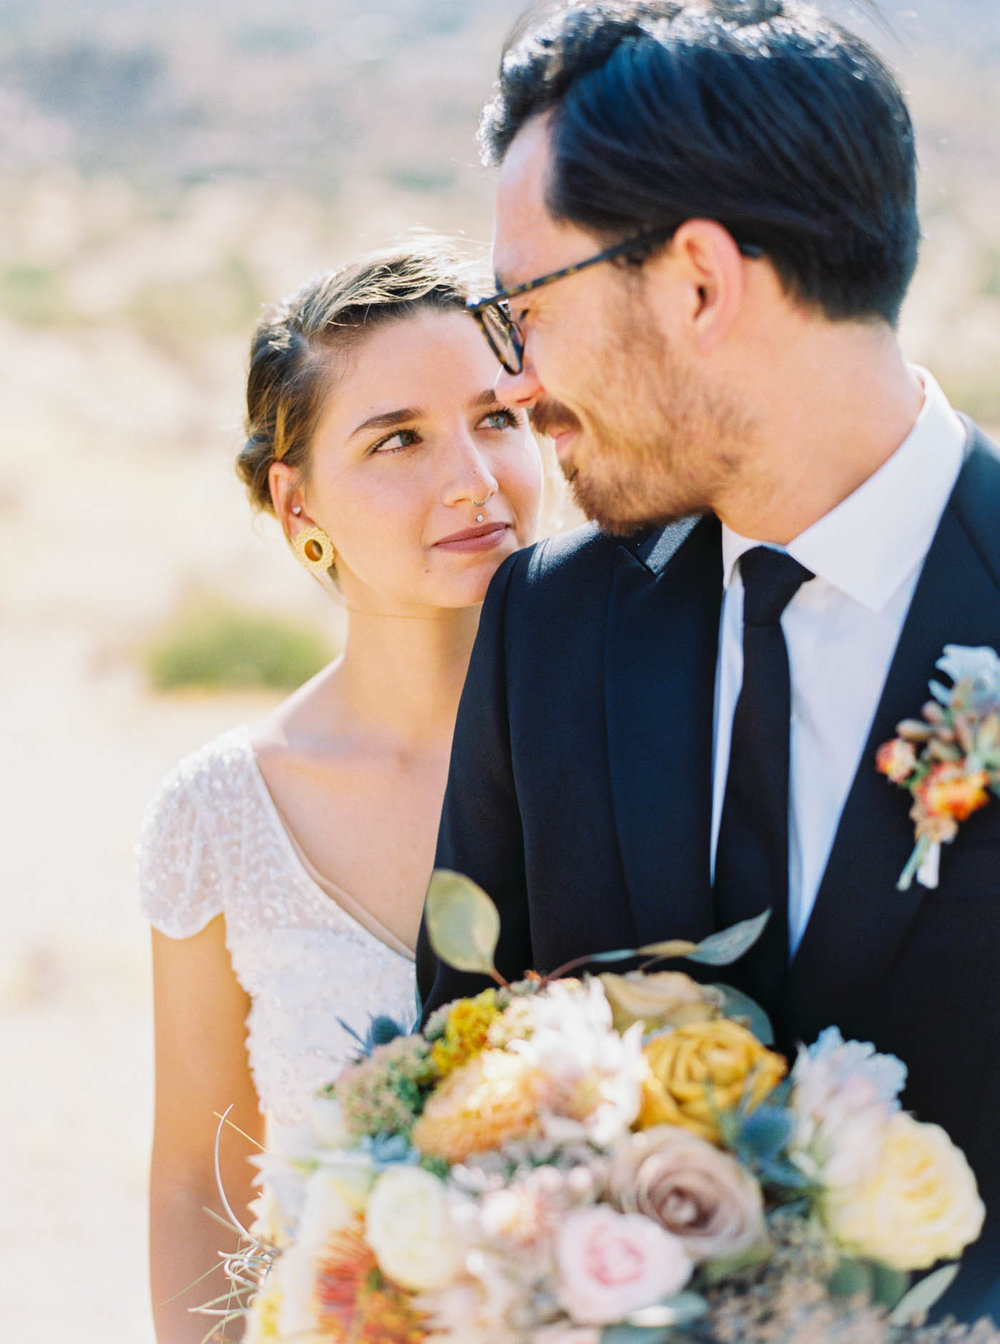 Joshua Tree wedding-25.jpg